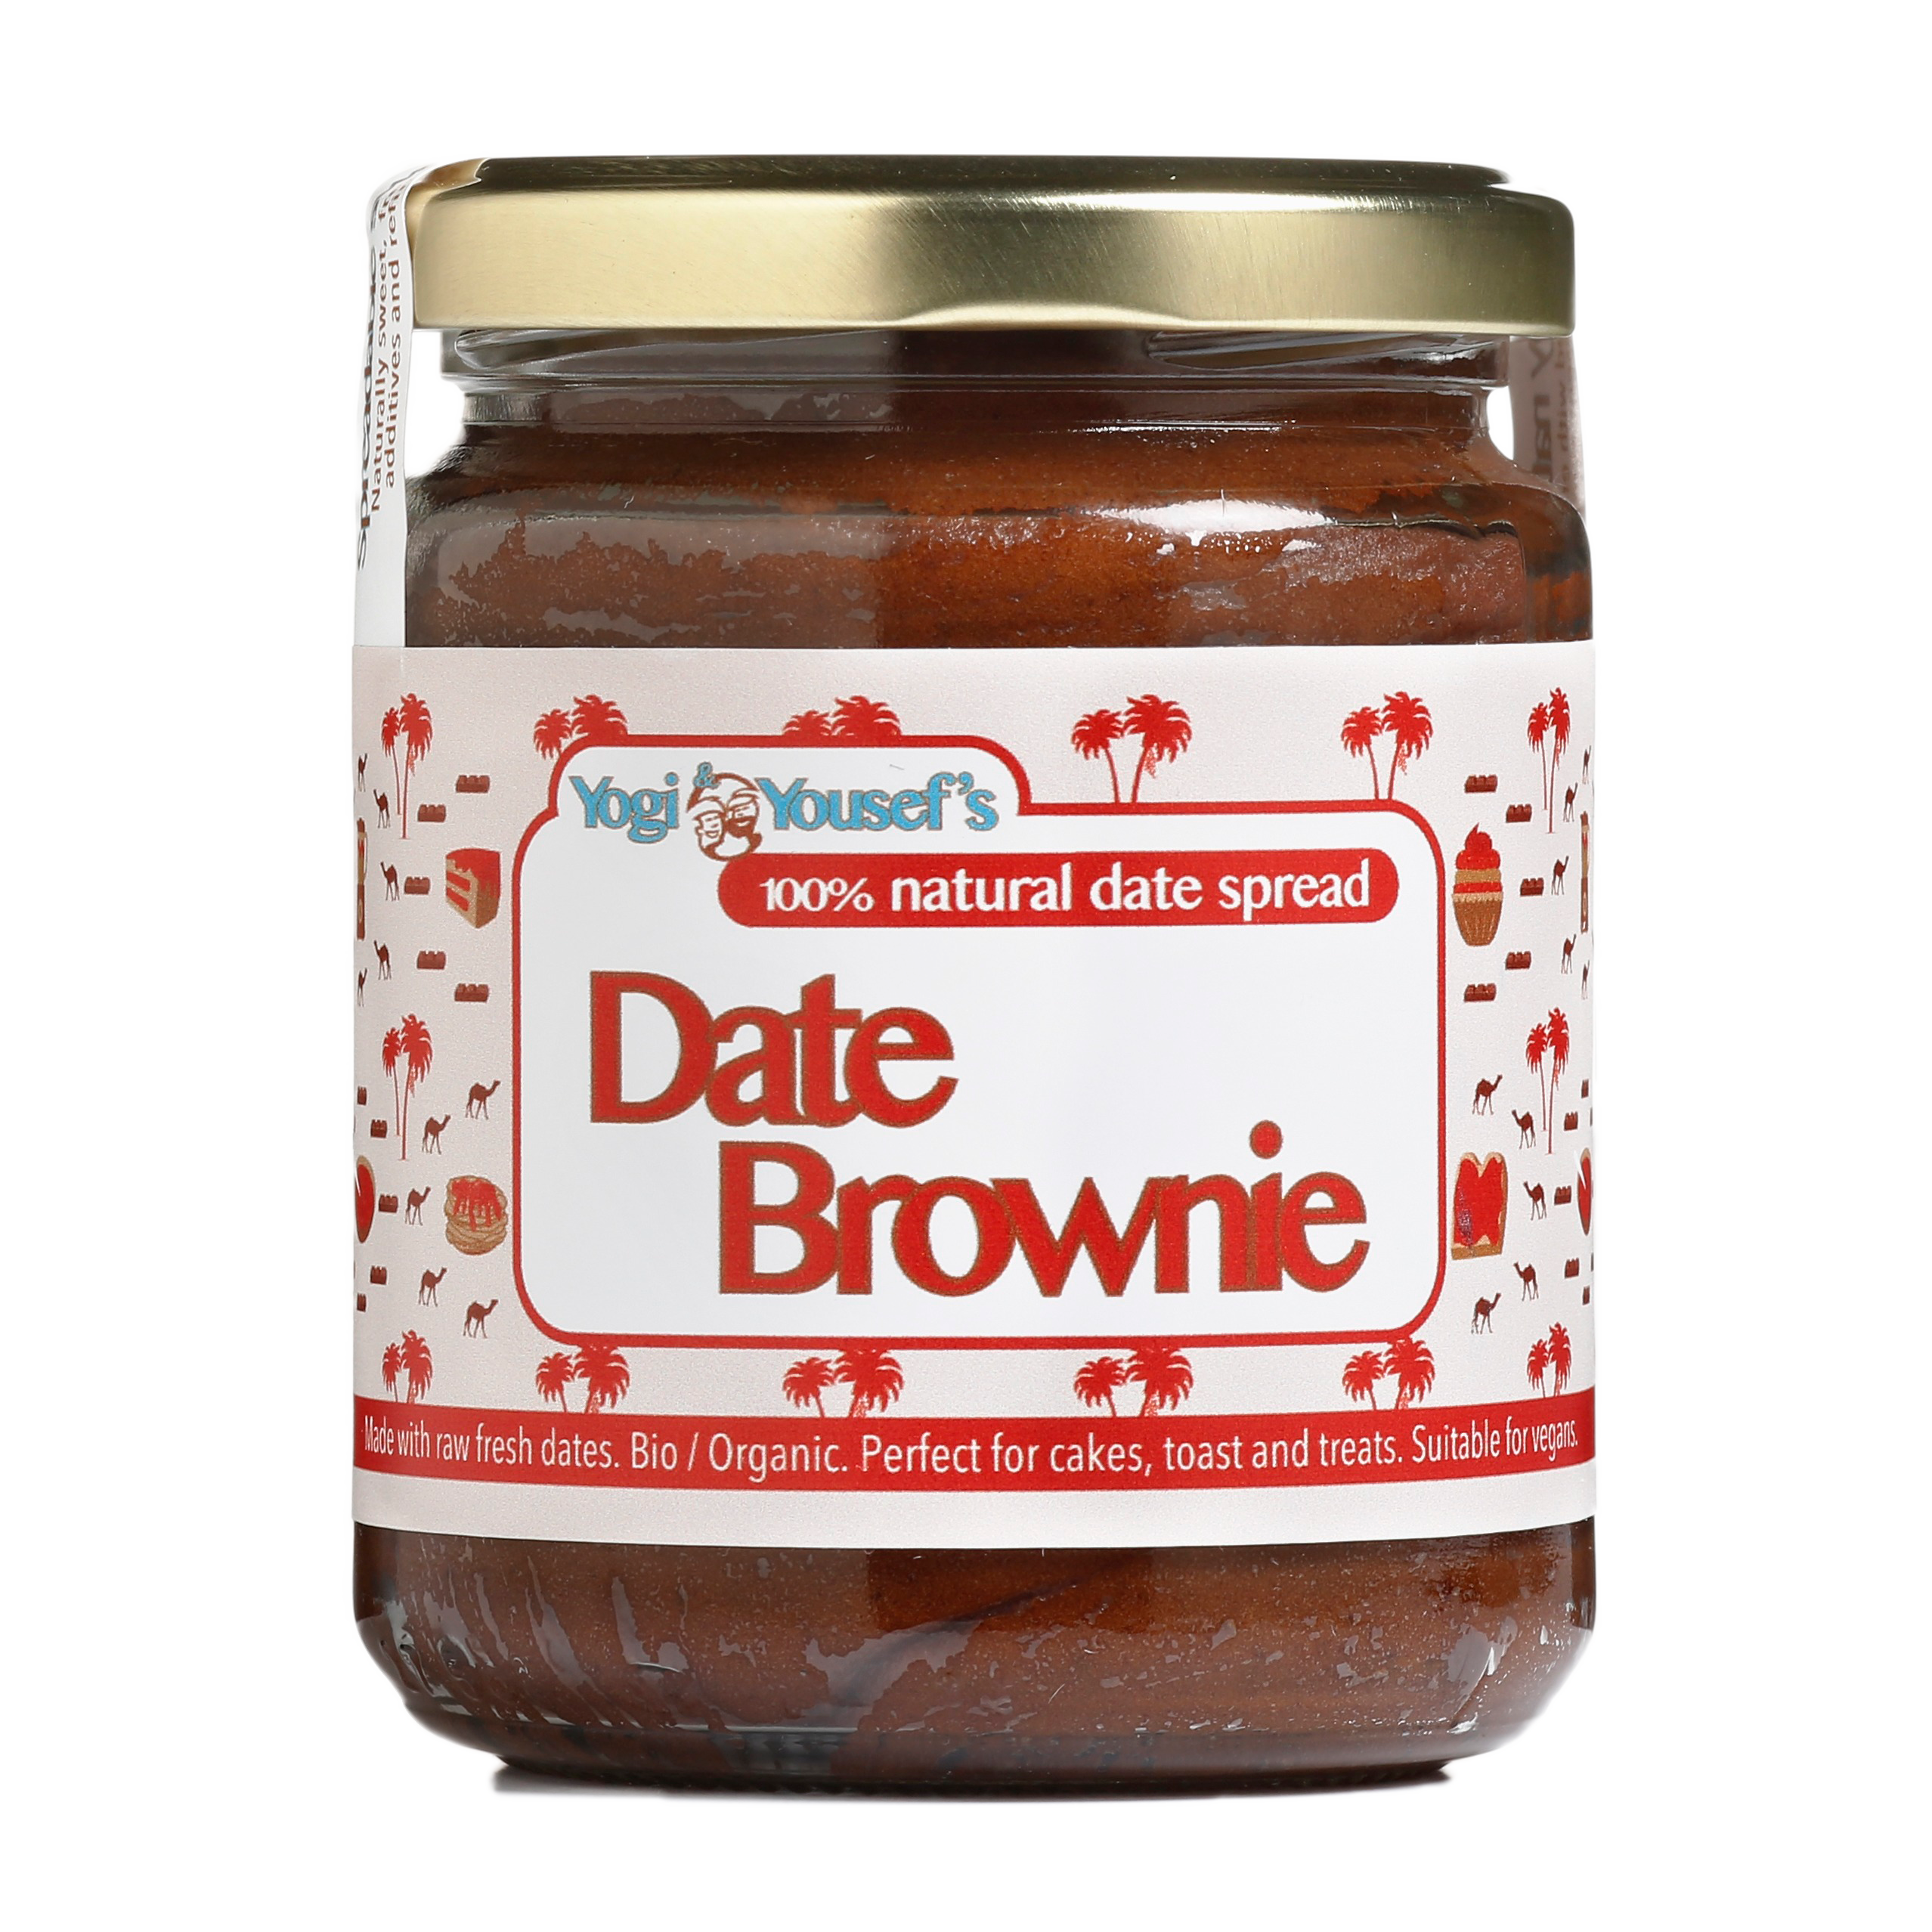 Dadelspread Date Brownie - Yogi & Yousef - product ontwerp - Dots & Lines